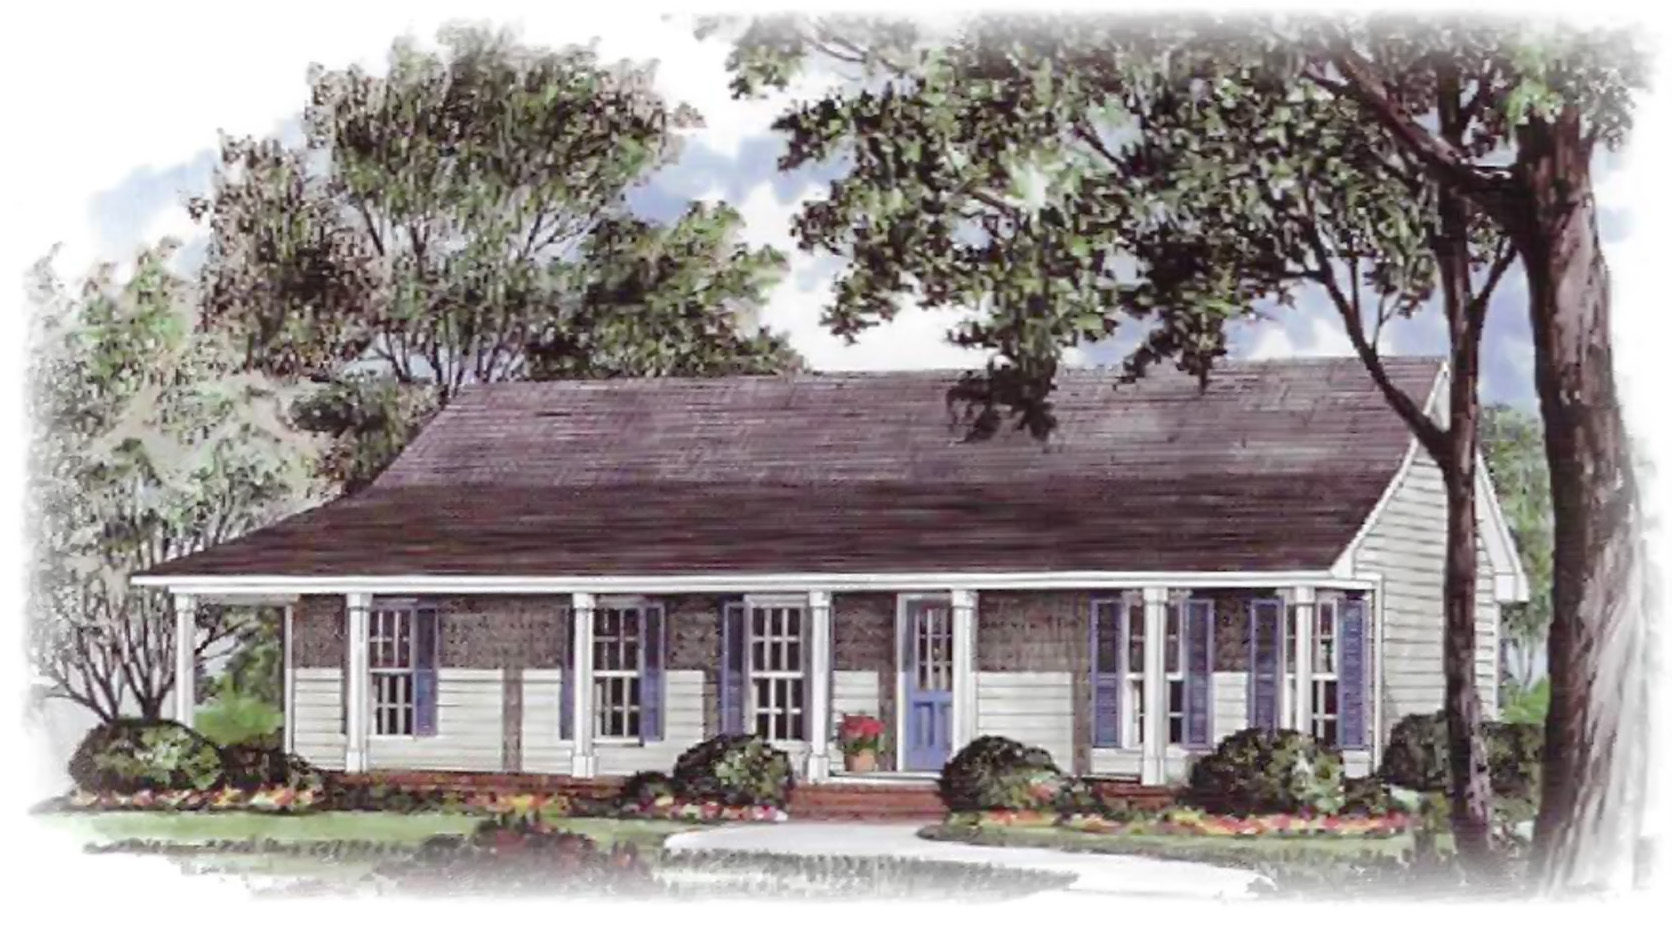 Farmhouse Pennyworth Homes Tallahassee Home Builder